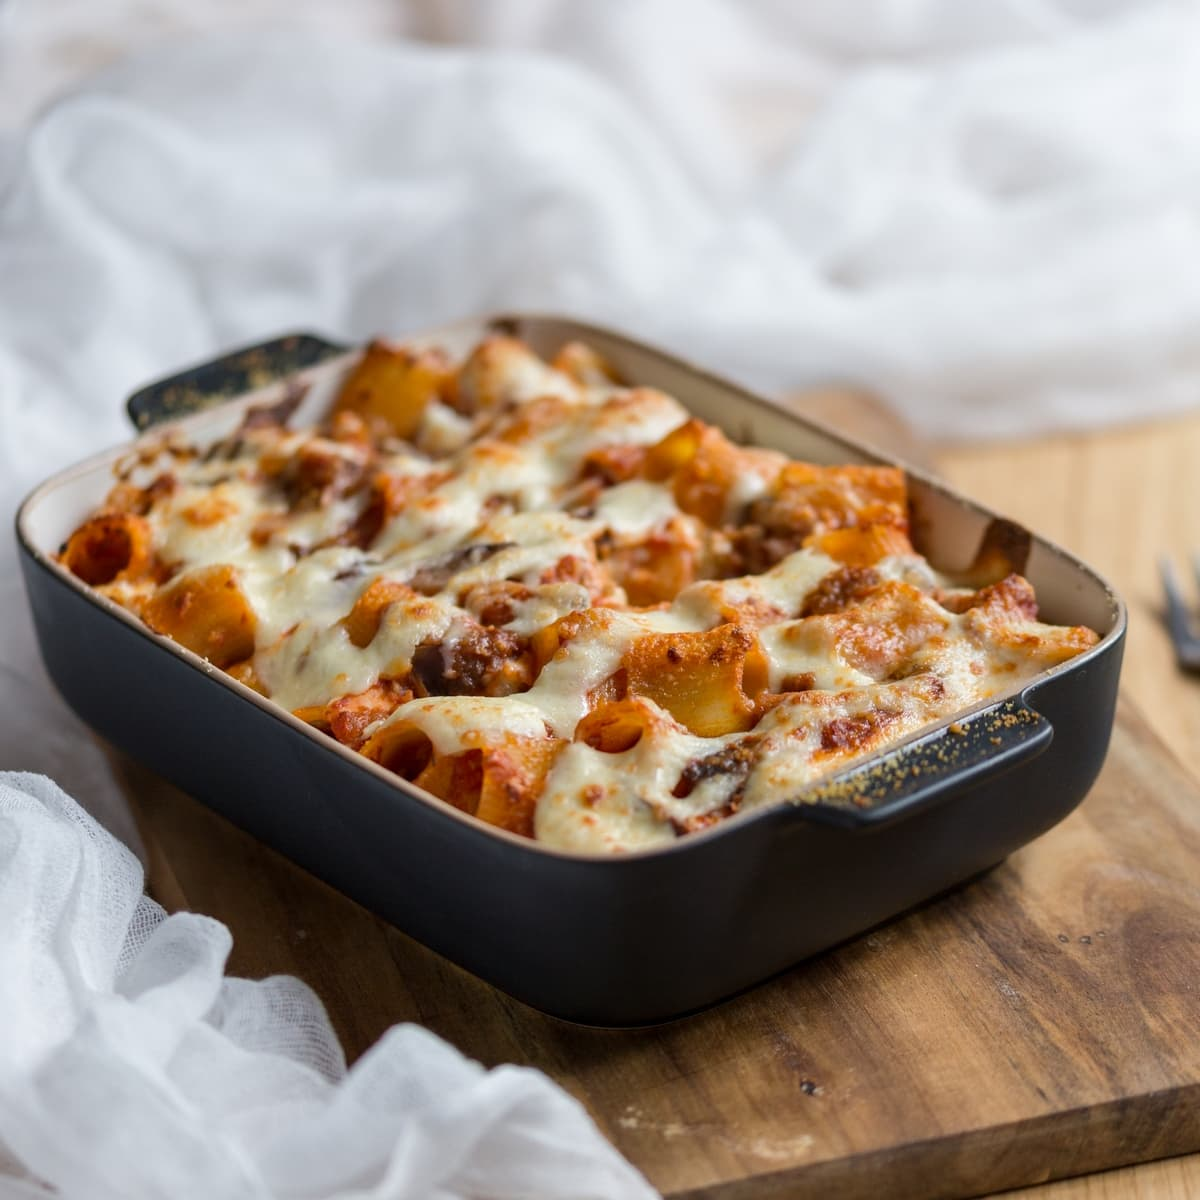 Eggplant pasta bake served in casserole dish.